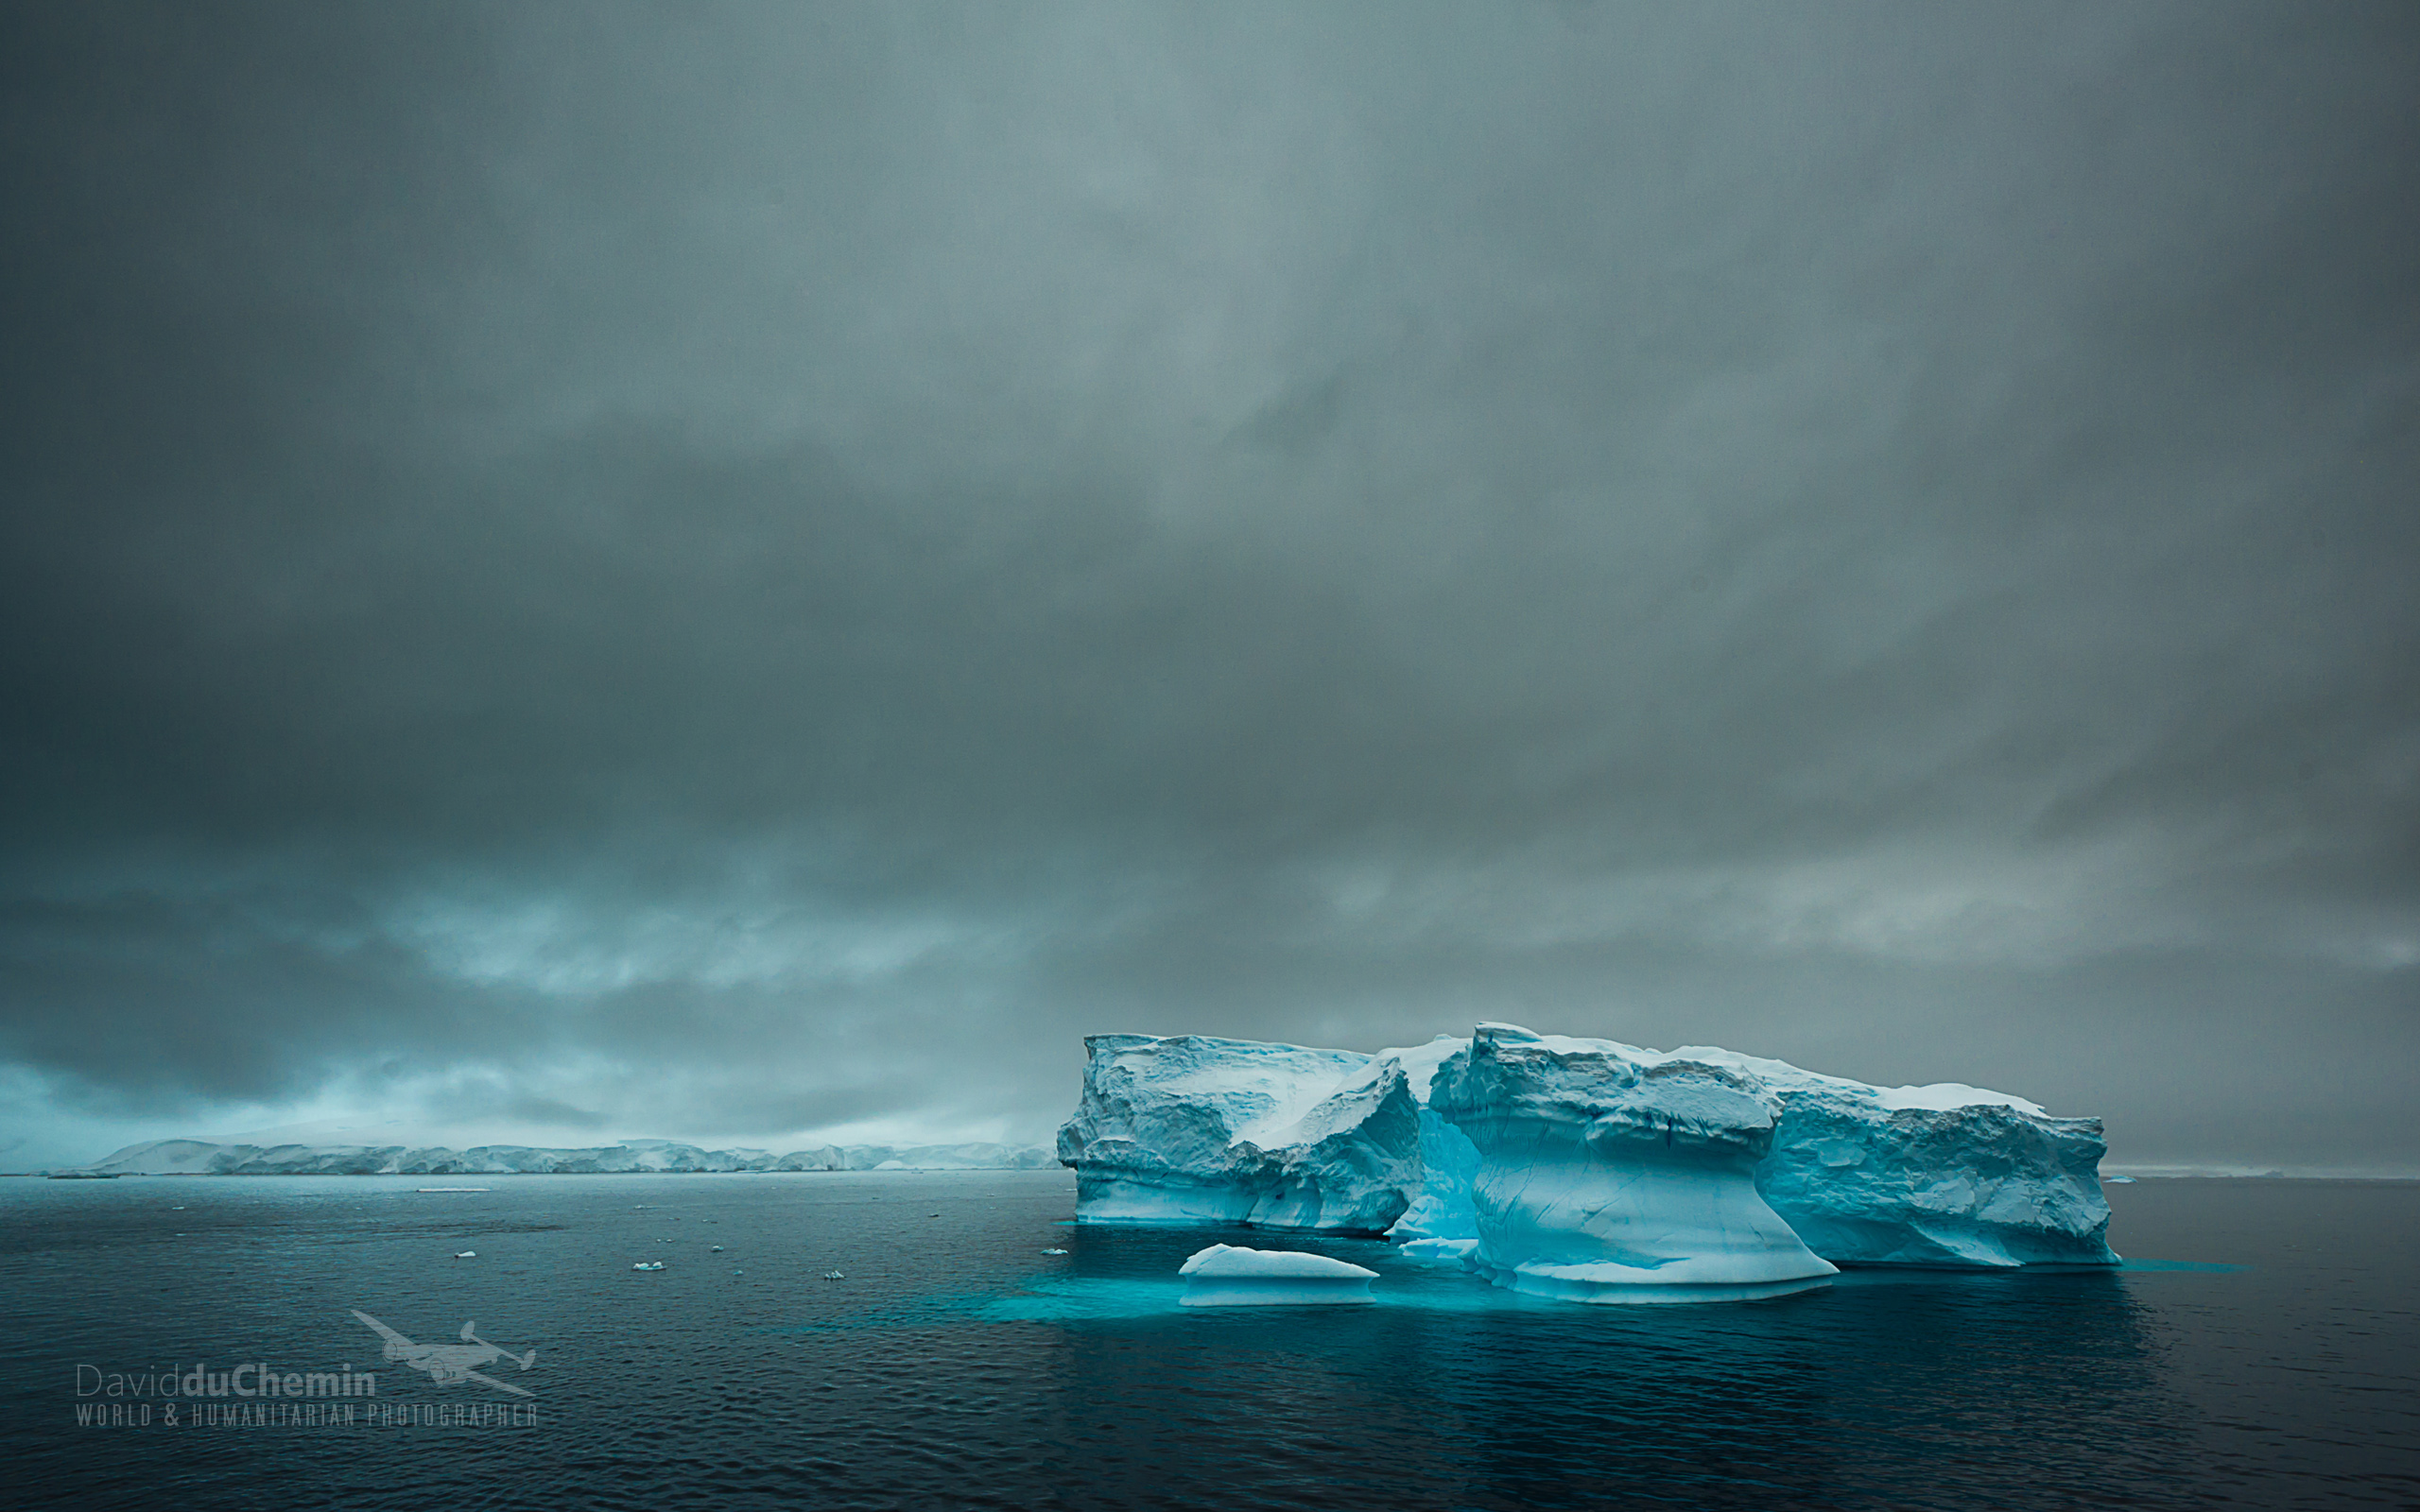 Antarctica Dark Clouds Wallpaper   Travel HD Wallpapers 2560x1600